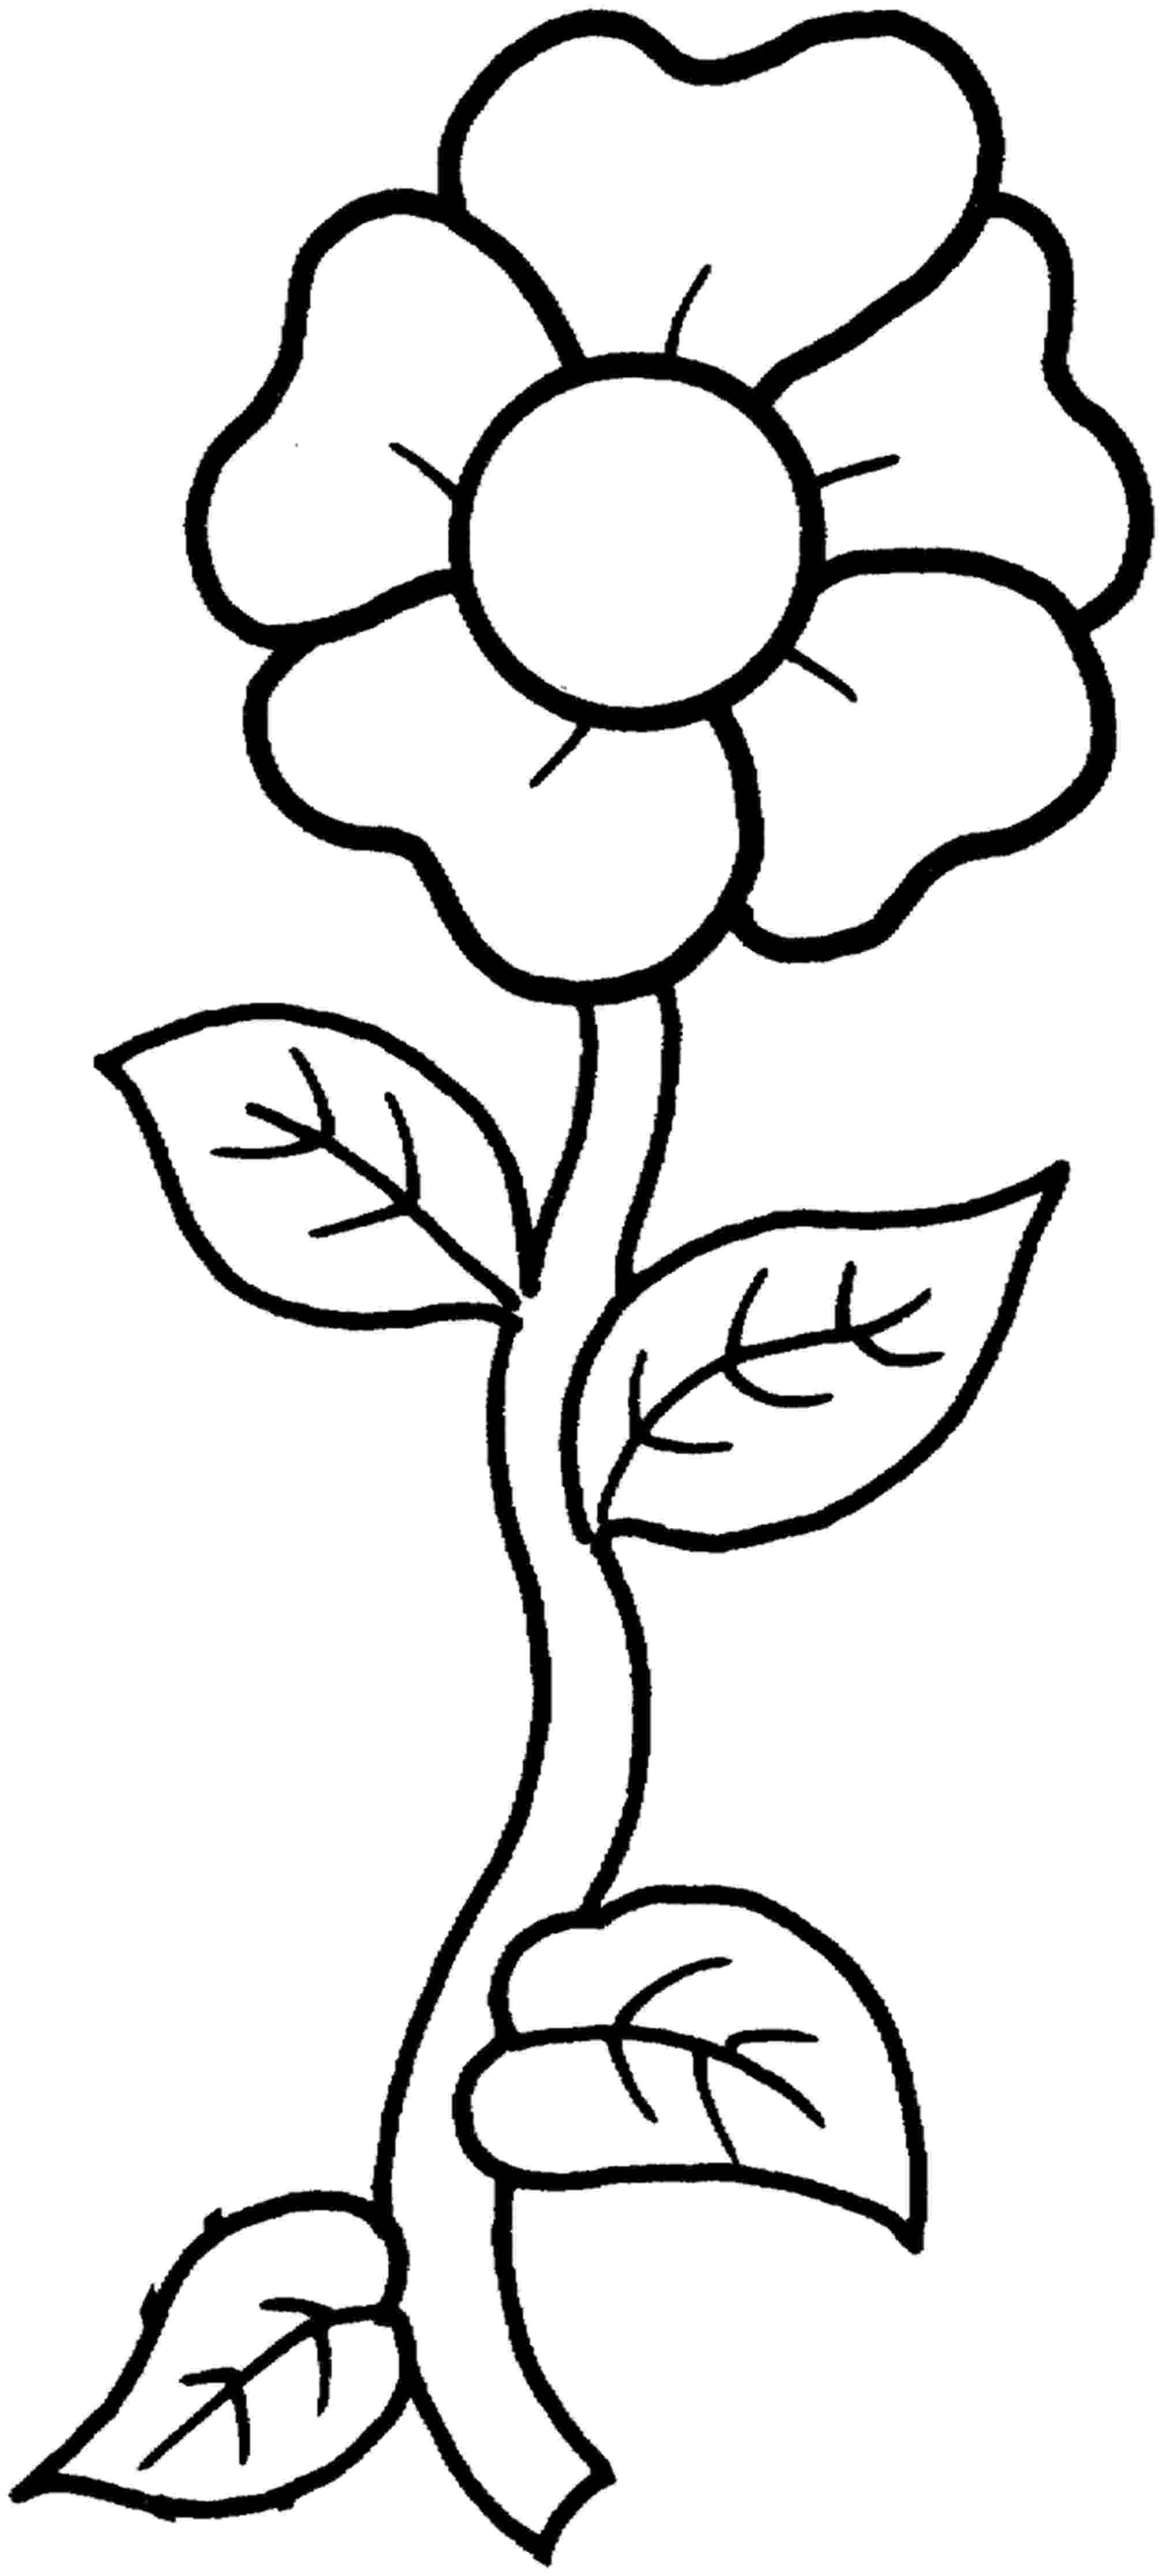 flower coloring books free printable flower coloring pages for kids best coloring flower books 1 1